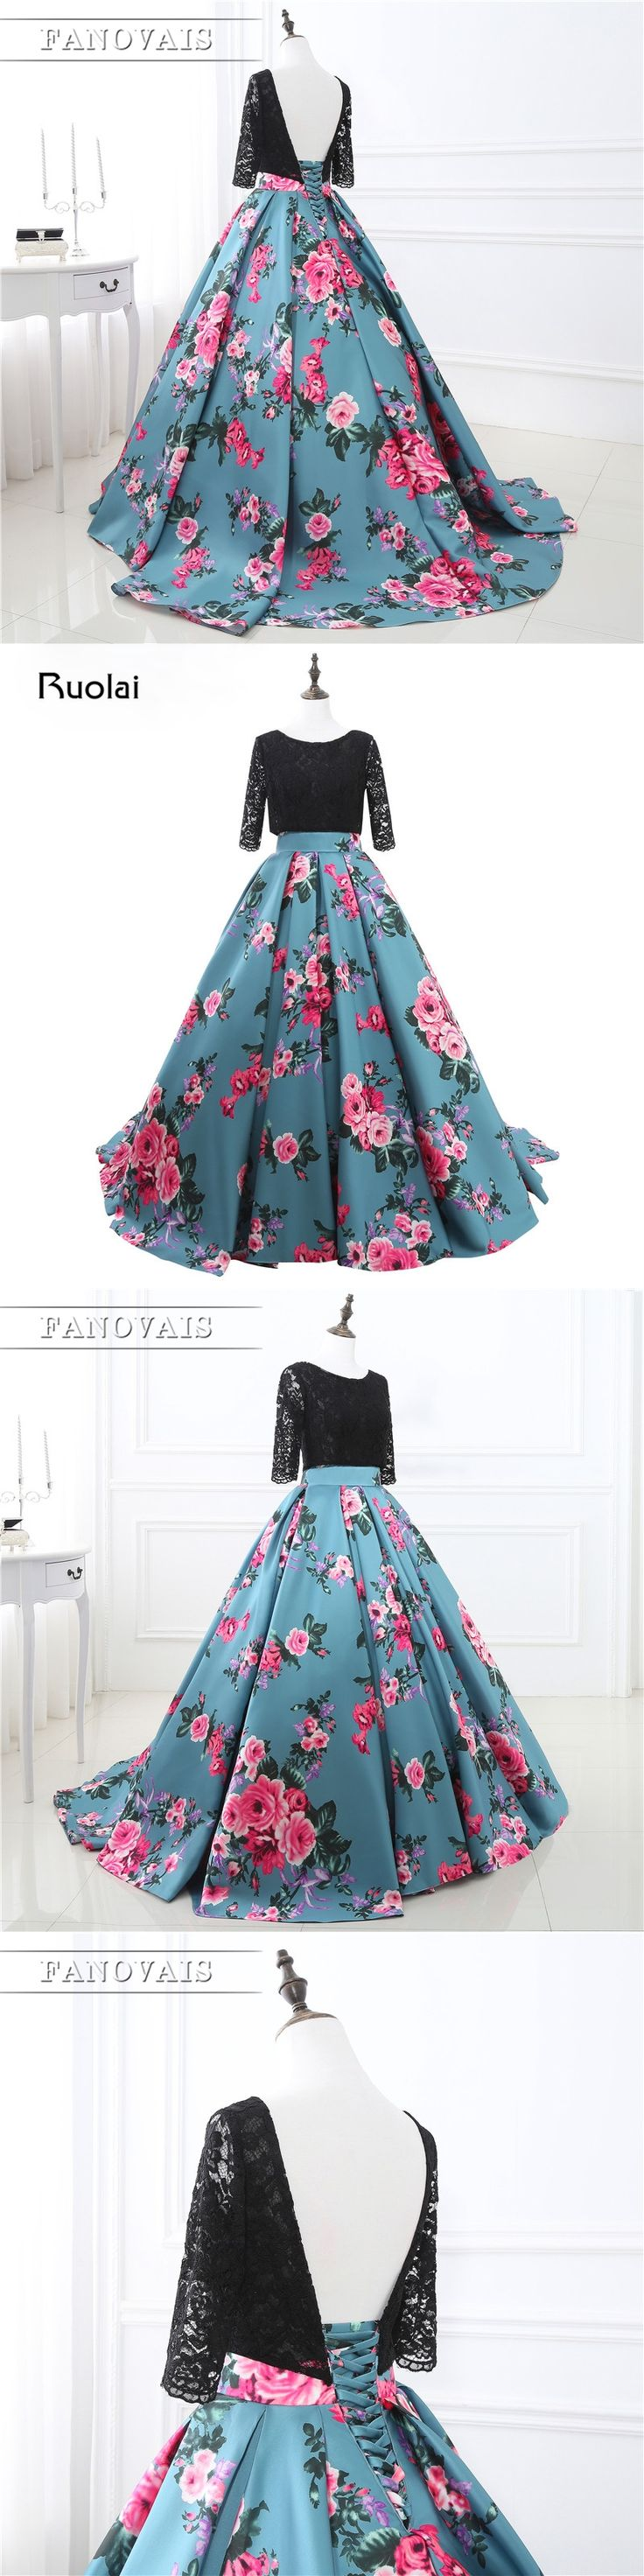 Fashion Real Photo Evening Dresses 2017 Half Sleeve Lace Top Floral Pattern Ball Gown Prom Dresses Long Printed Party Dress PD90